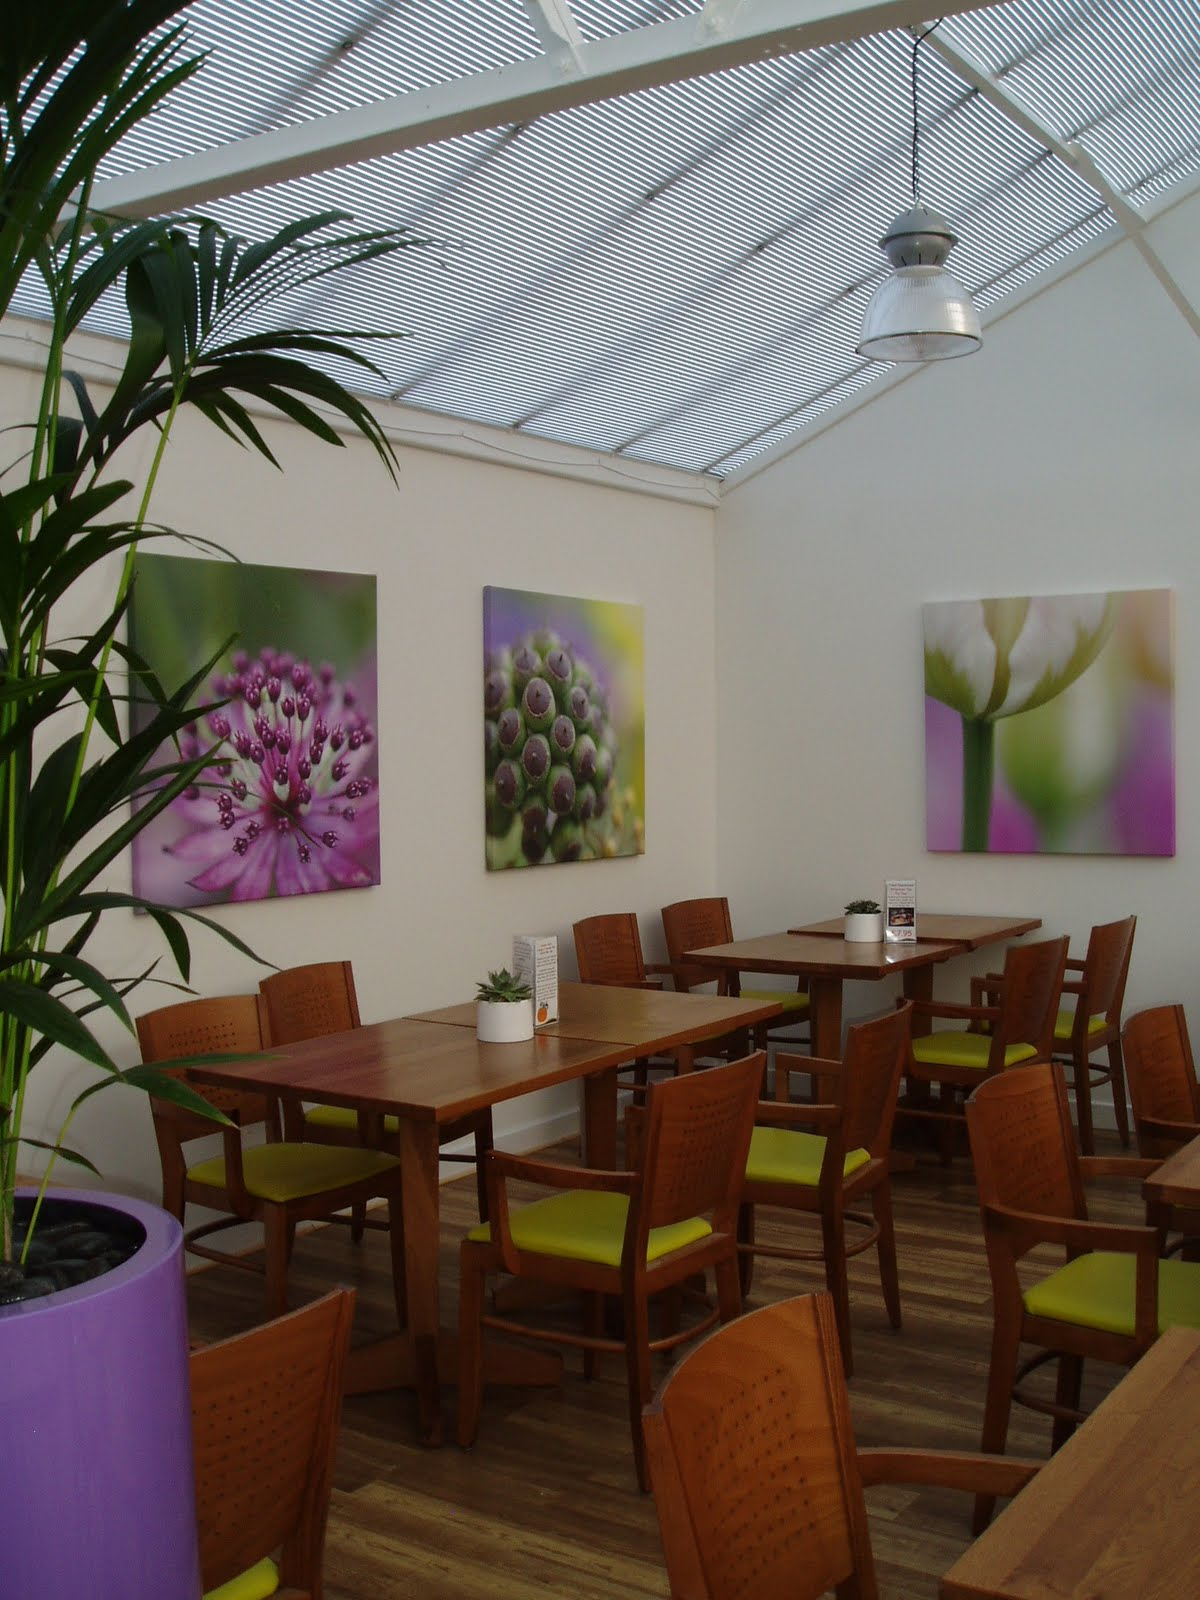 Stewarts Garden Centres: Edwards Coffee Shop now open!